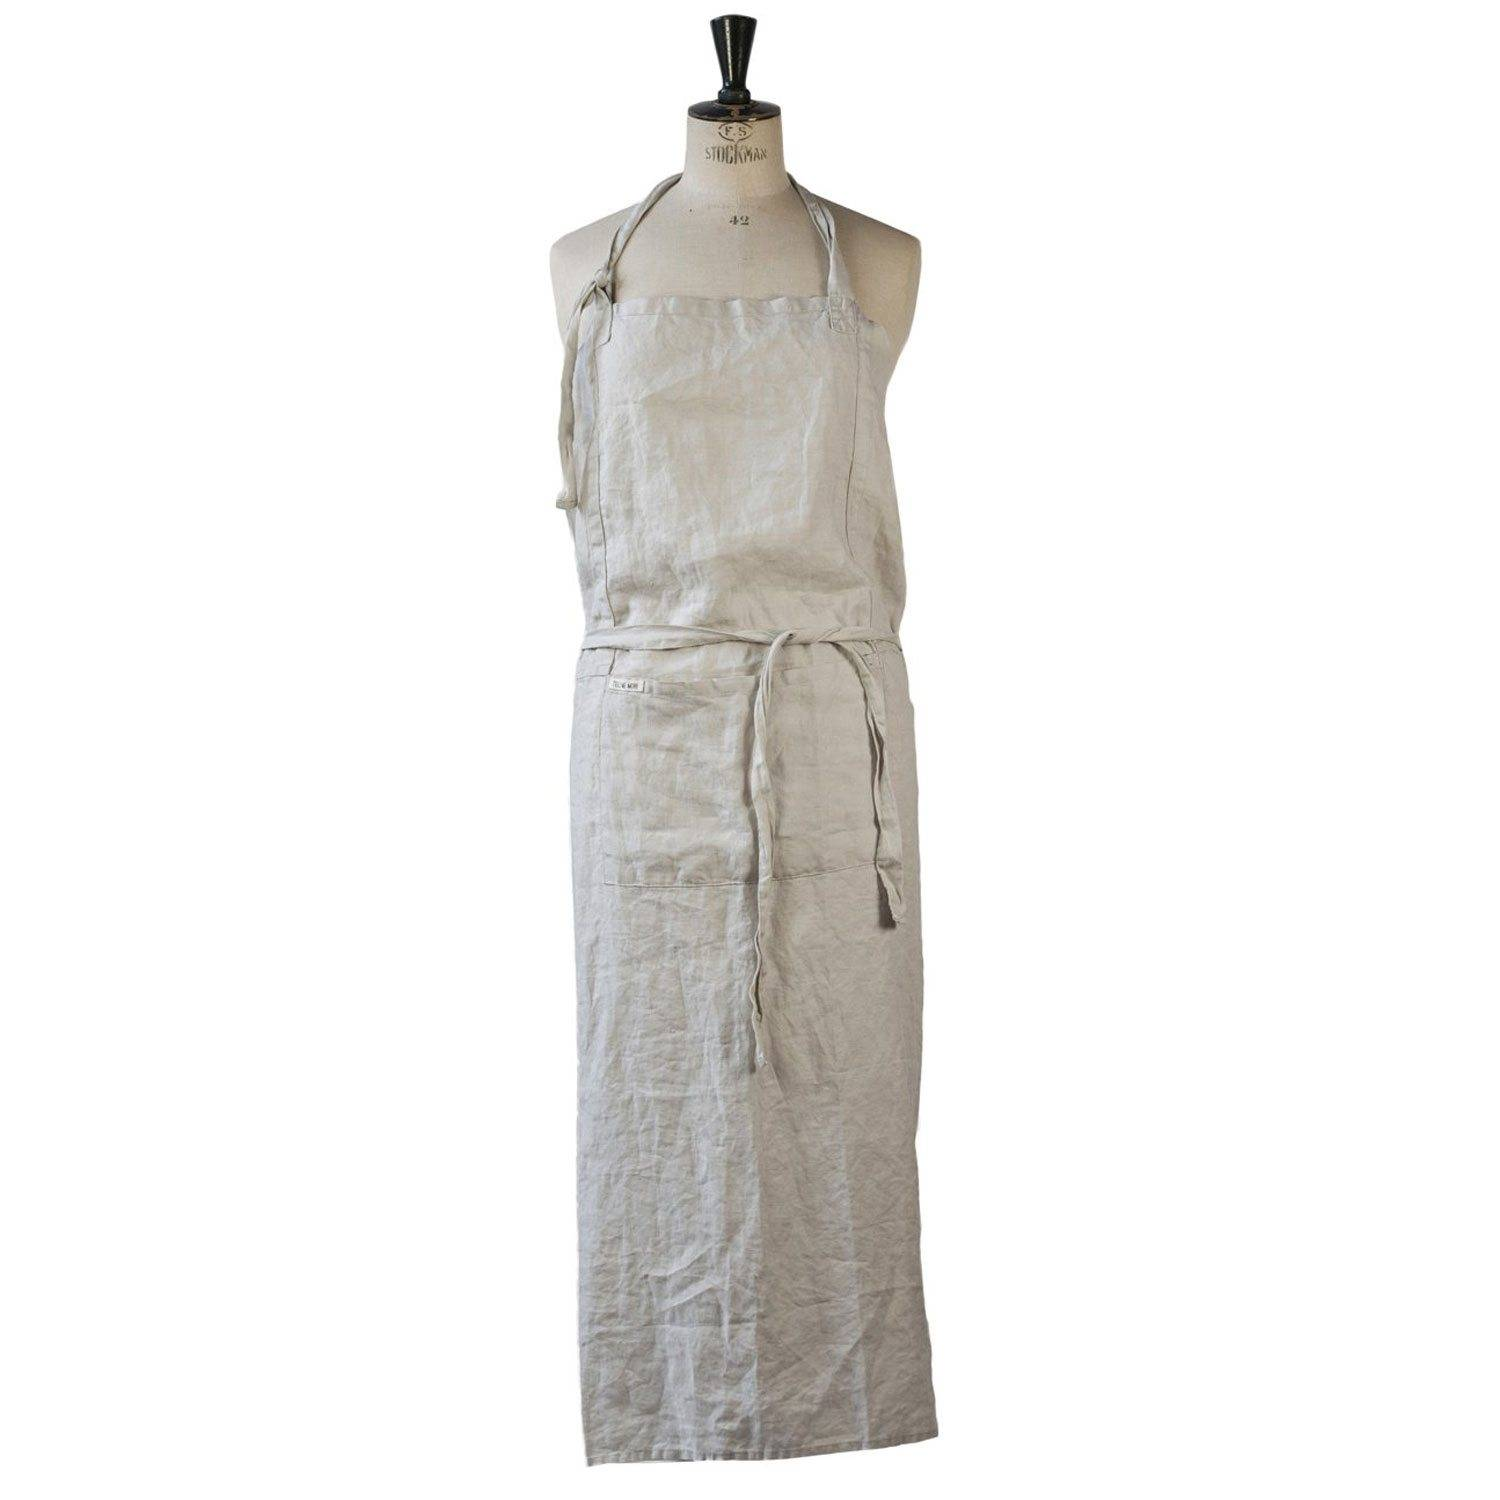 Tell Me More Washed Linen Apron 100x110 cm, Light Grey